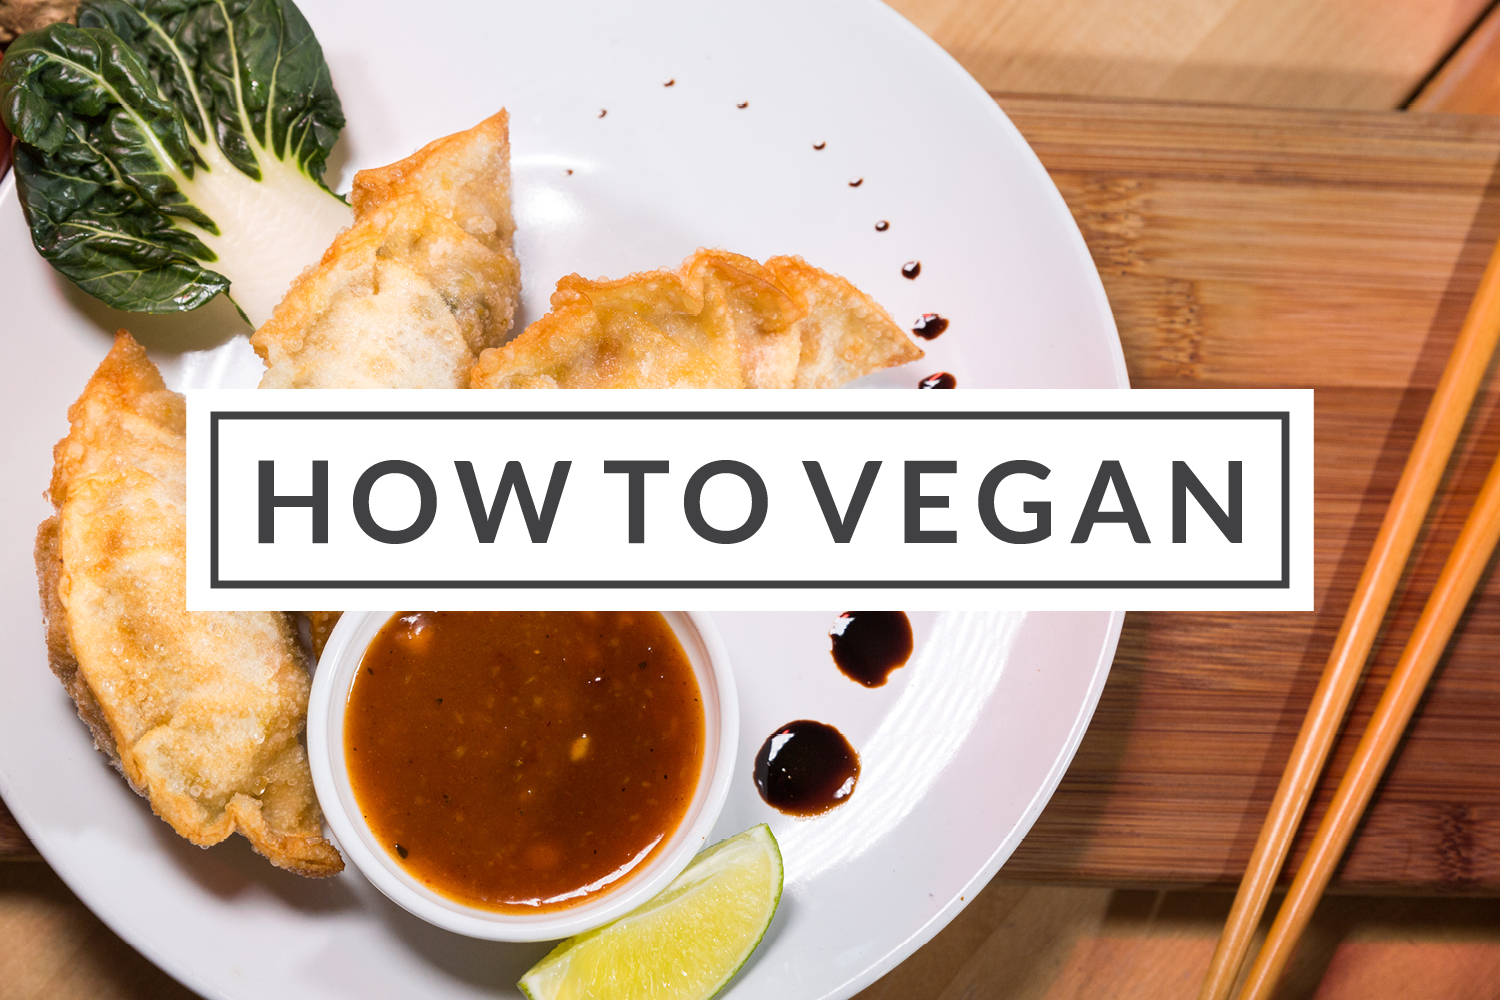 How To Vegan - A Herbivores Survival Guide To Veganuary